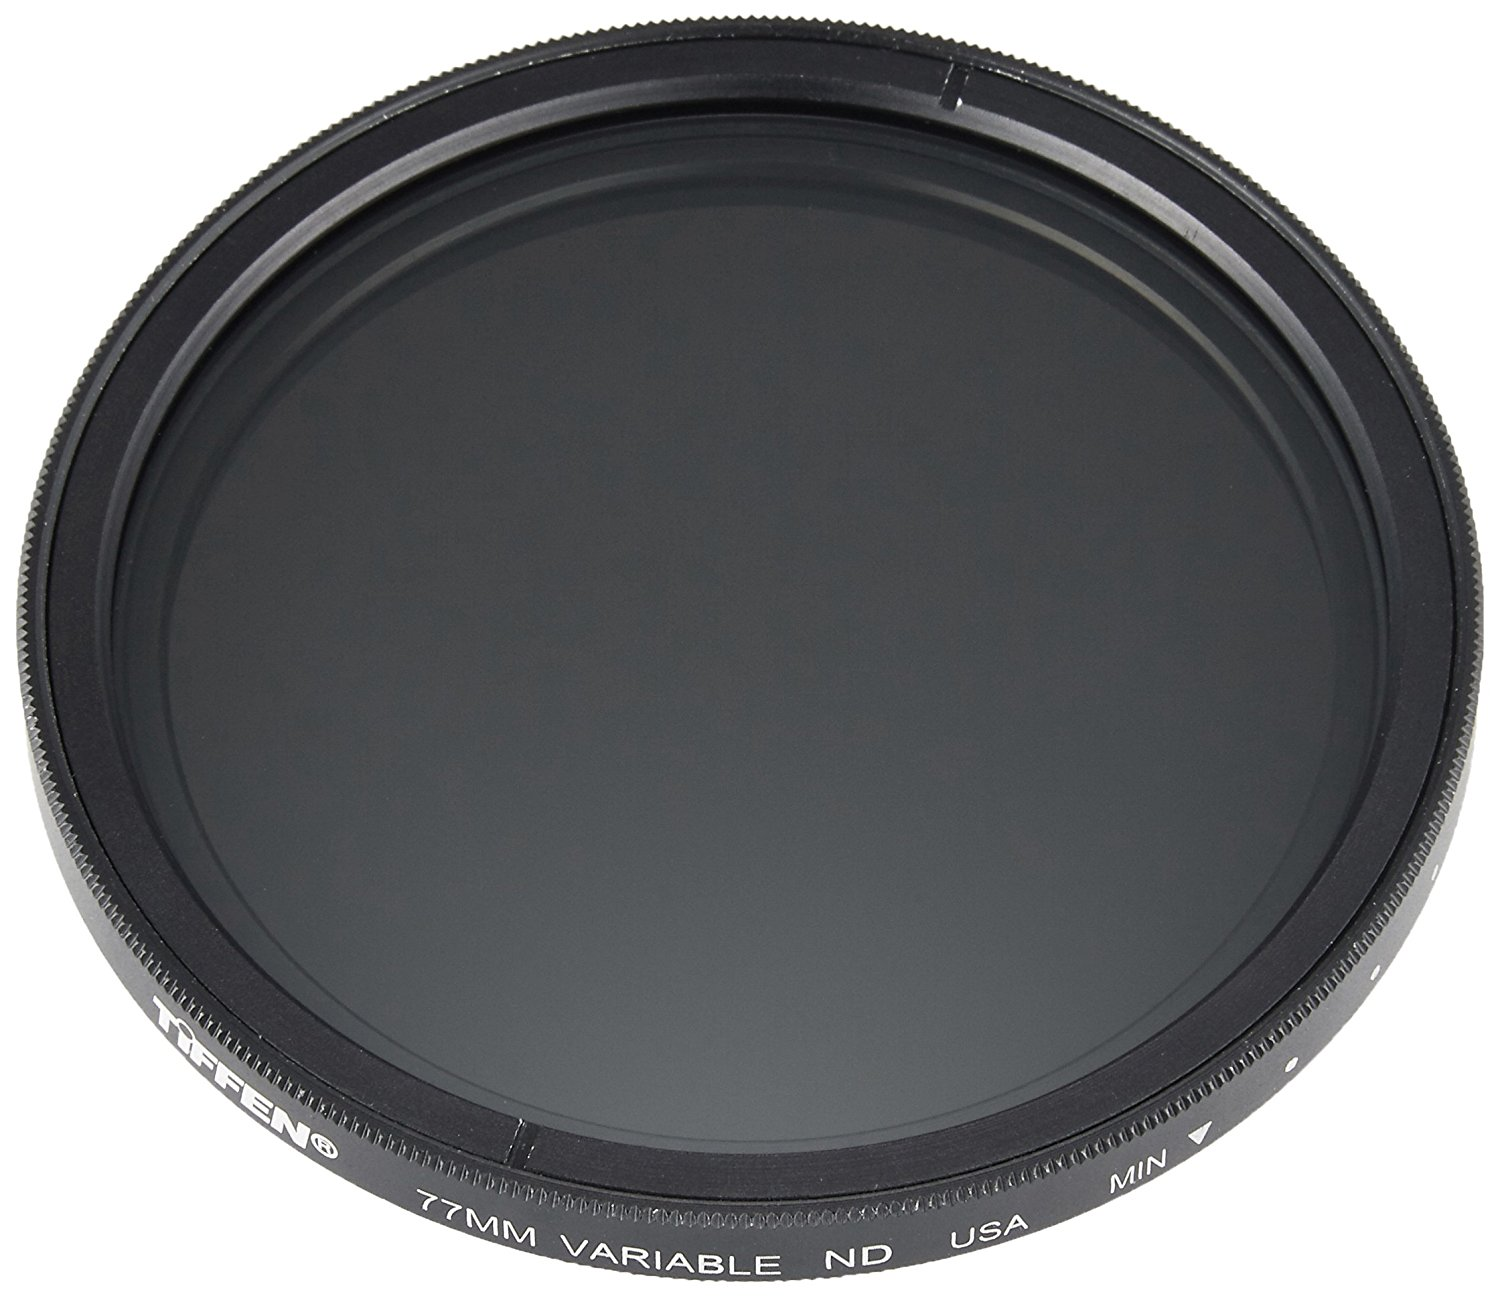 Hot Deal: Tiffen 77mm Variable Neutral Density Filter for $89.95 at B&H